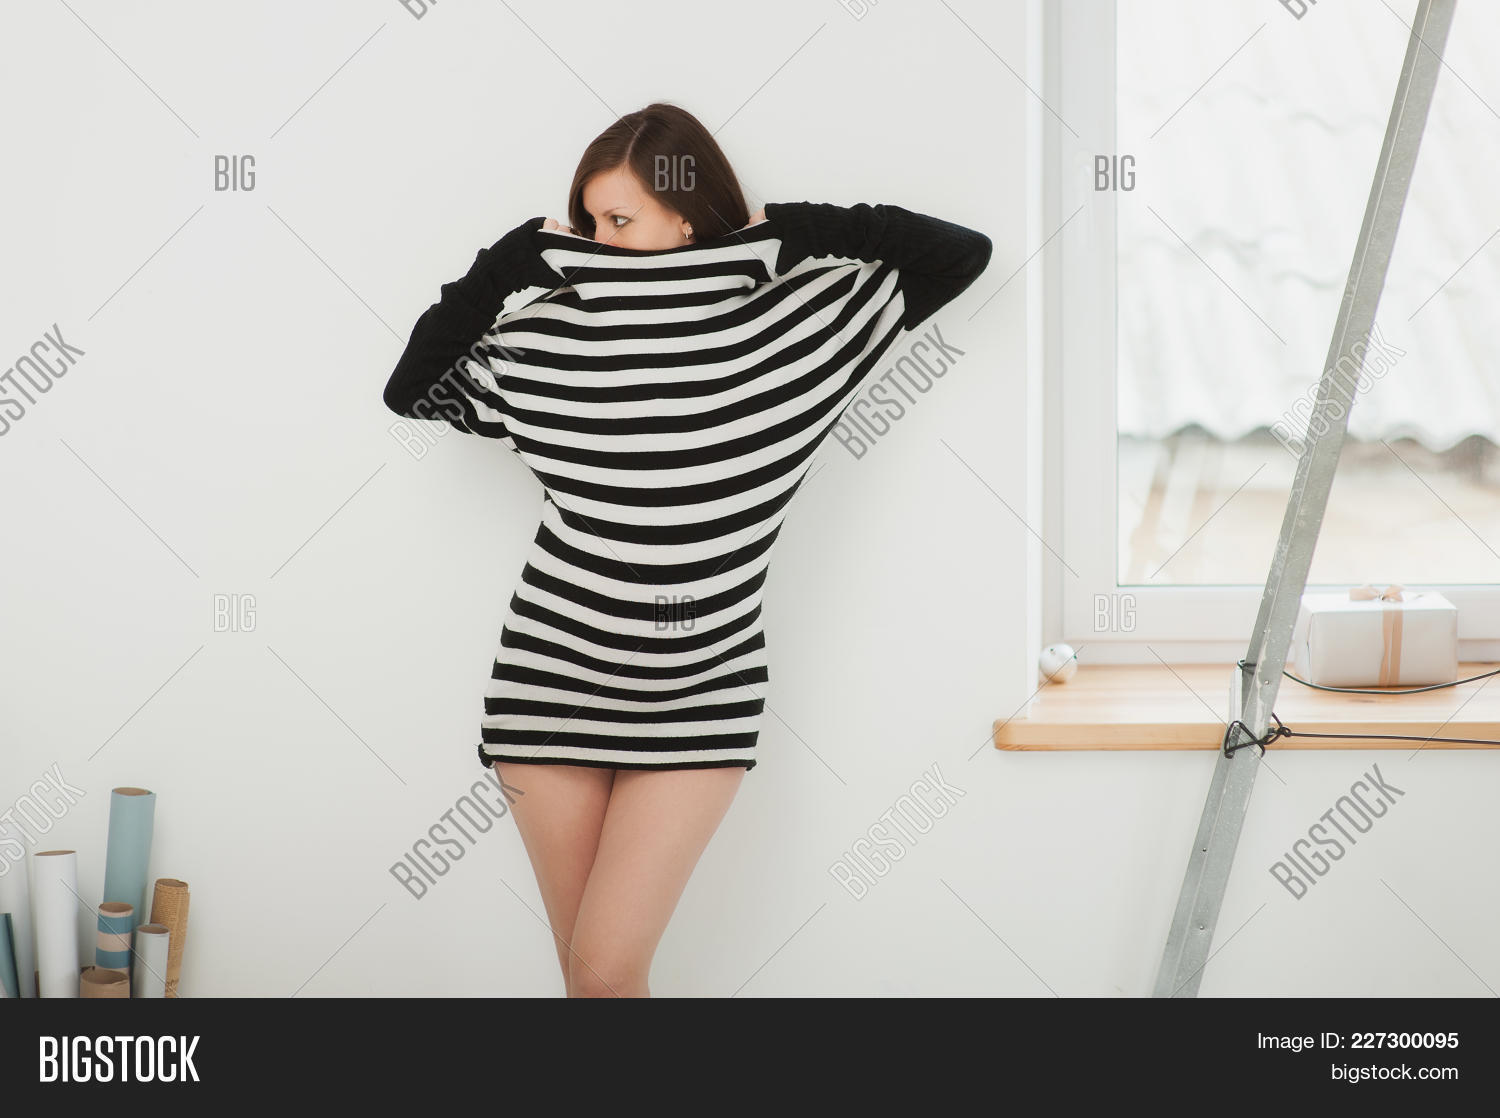 04f1d9a77ca06 Beautiful Fashion Pregnant Young Happy Brunette Woman In Striped Black White  Dress With Big Belly,